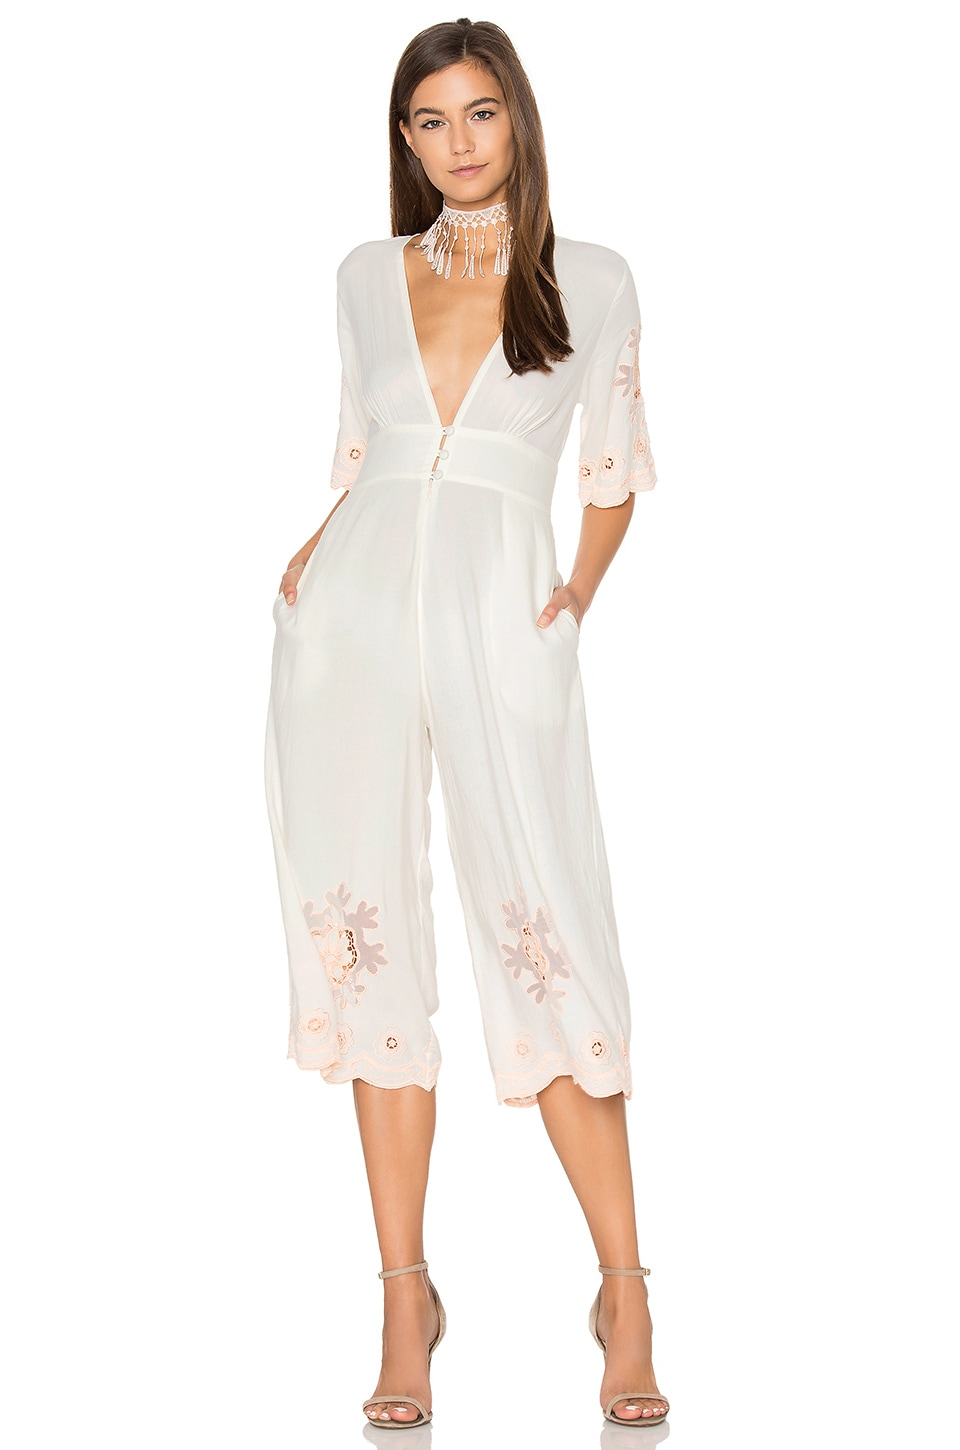 Cleobella Eve Jumpsuit in Ivory & Blush